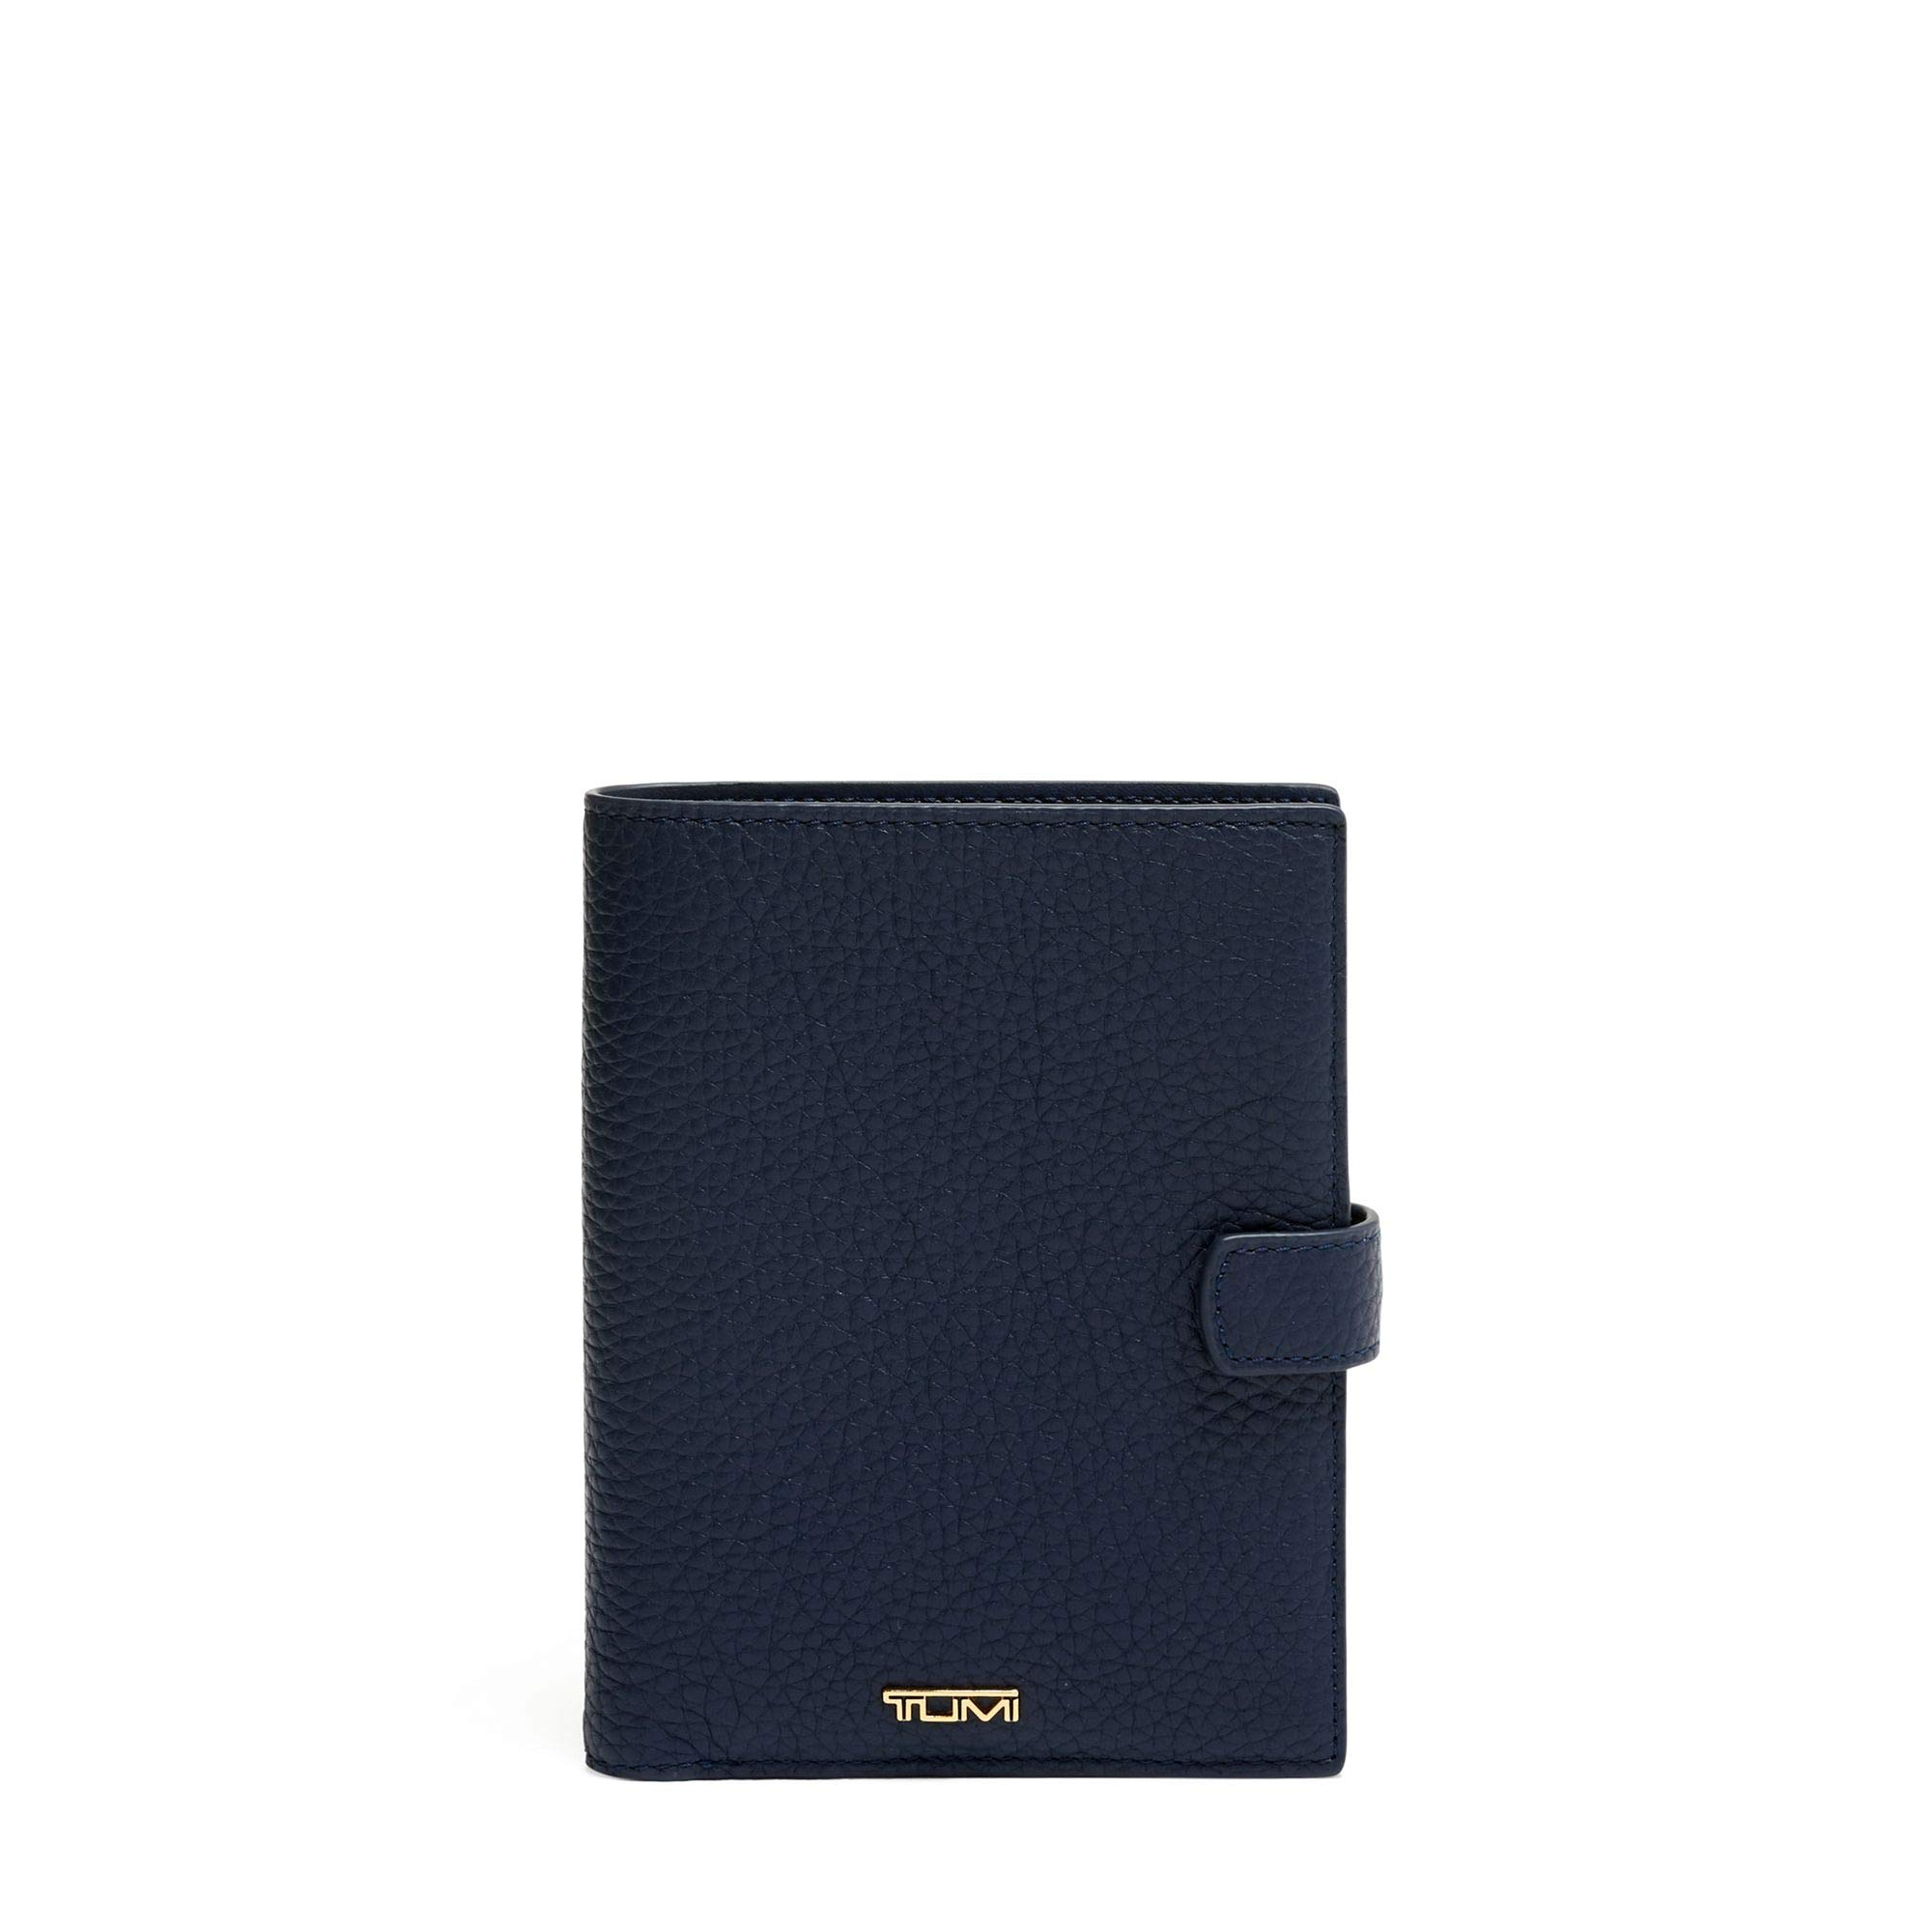 TUMI - Belden Passport Case - Ultramarine by TUMI